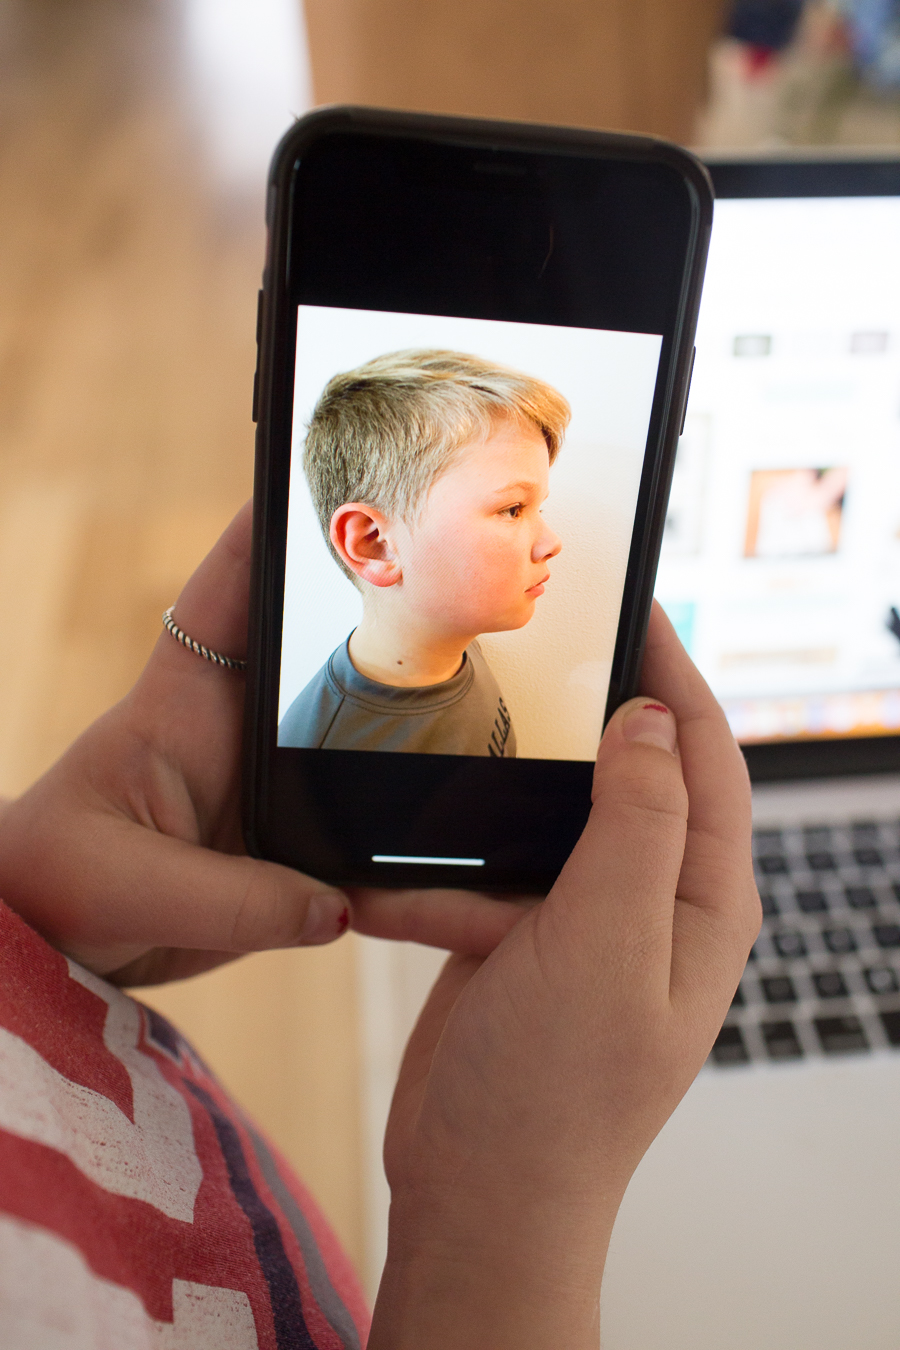 profile view of a blonde boy on an iphone